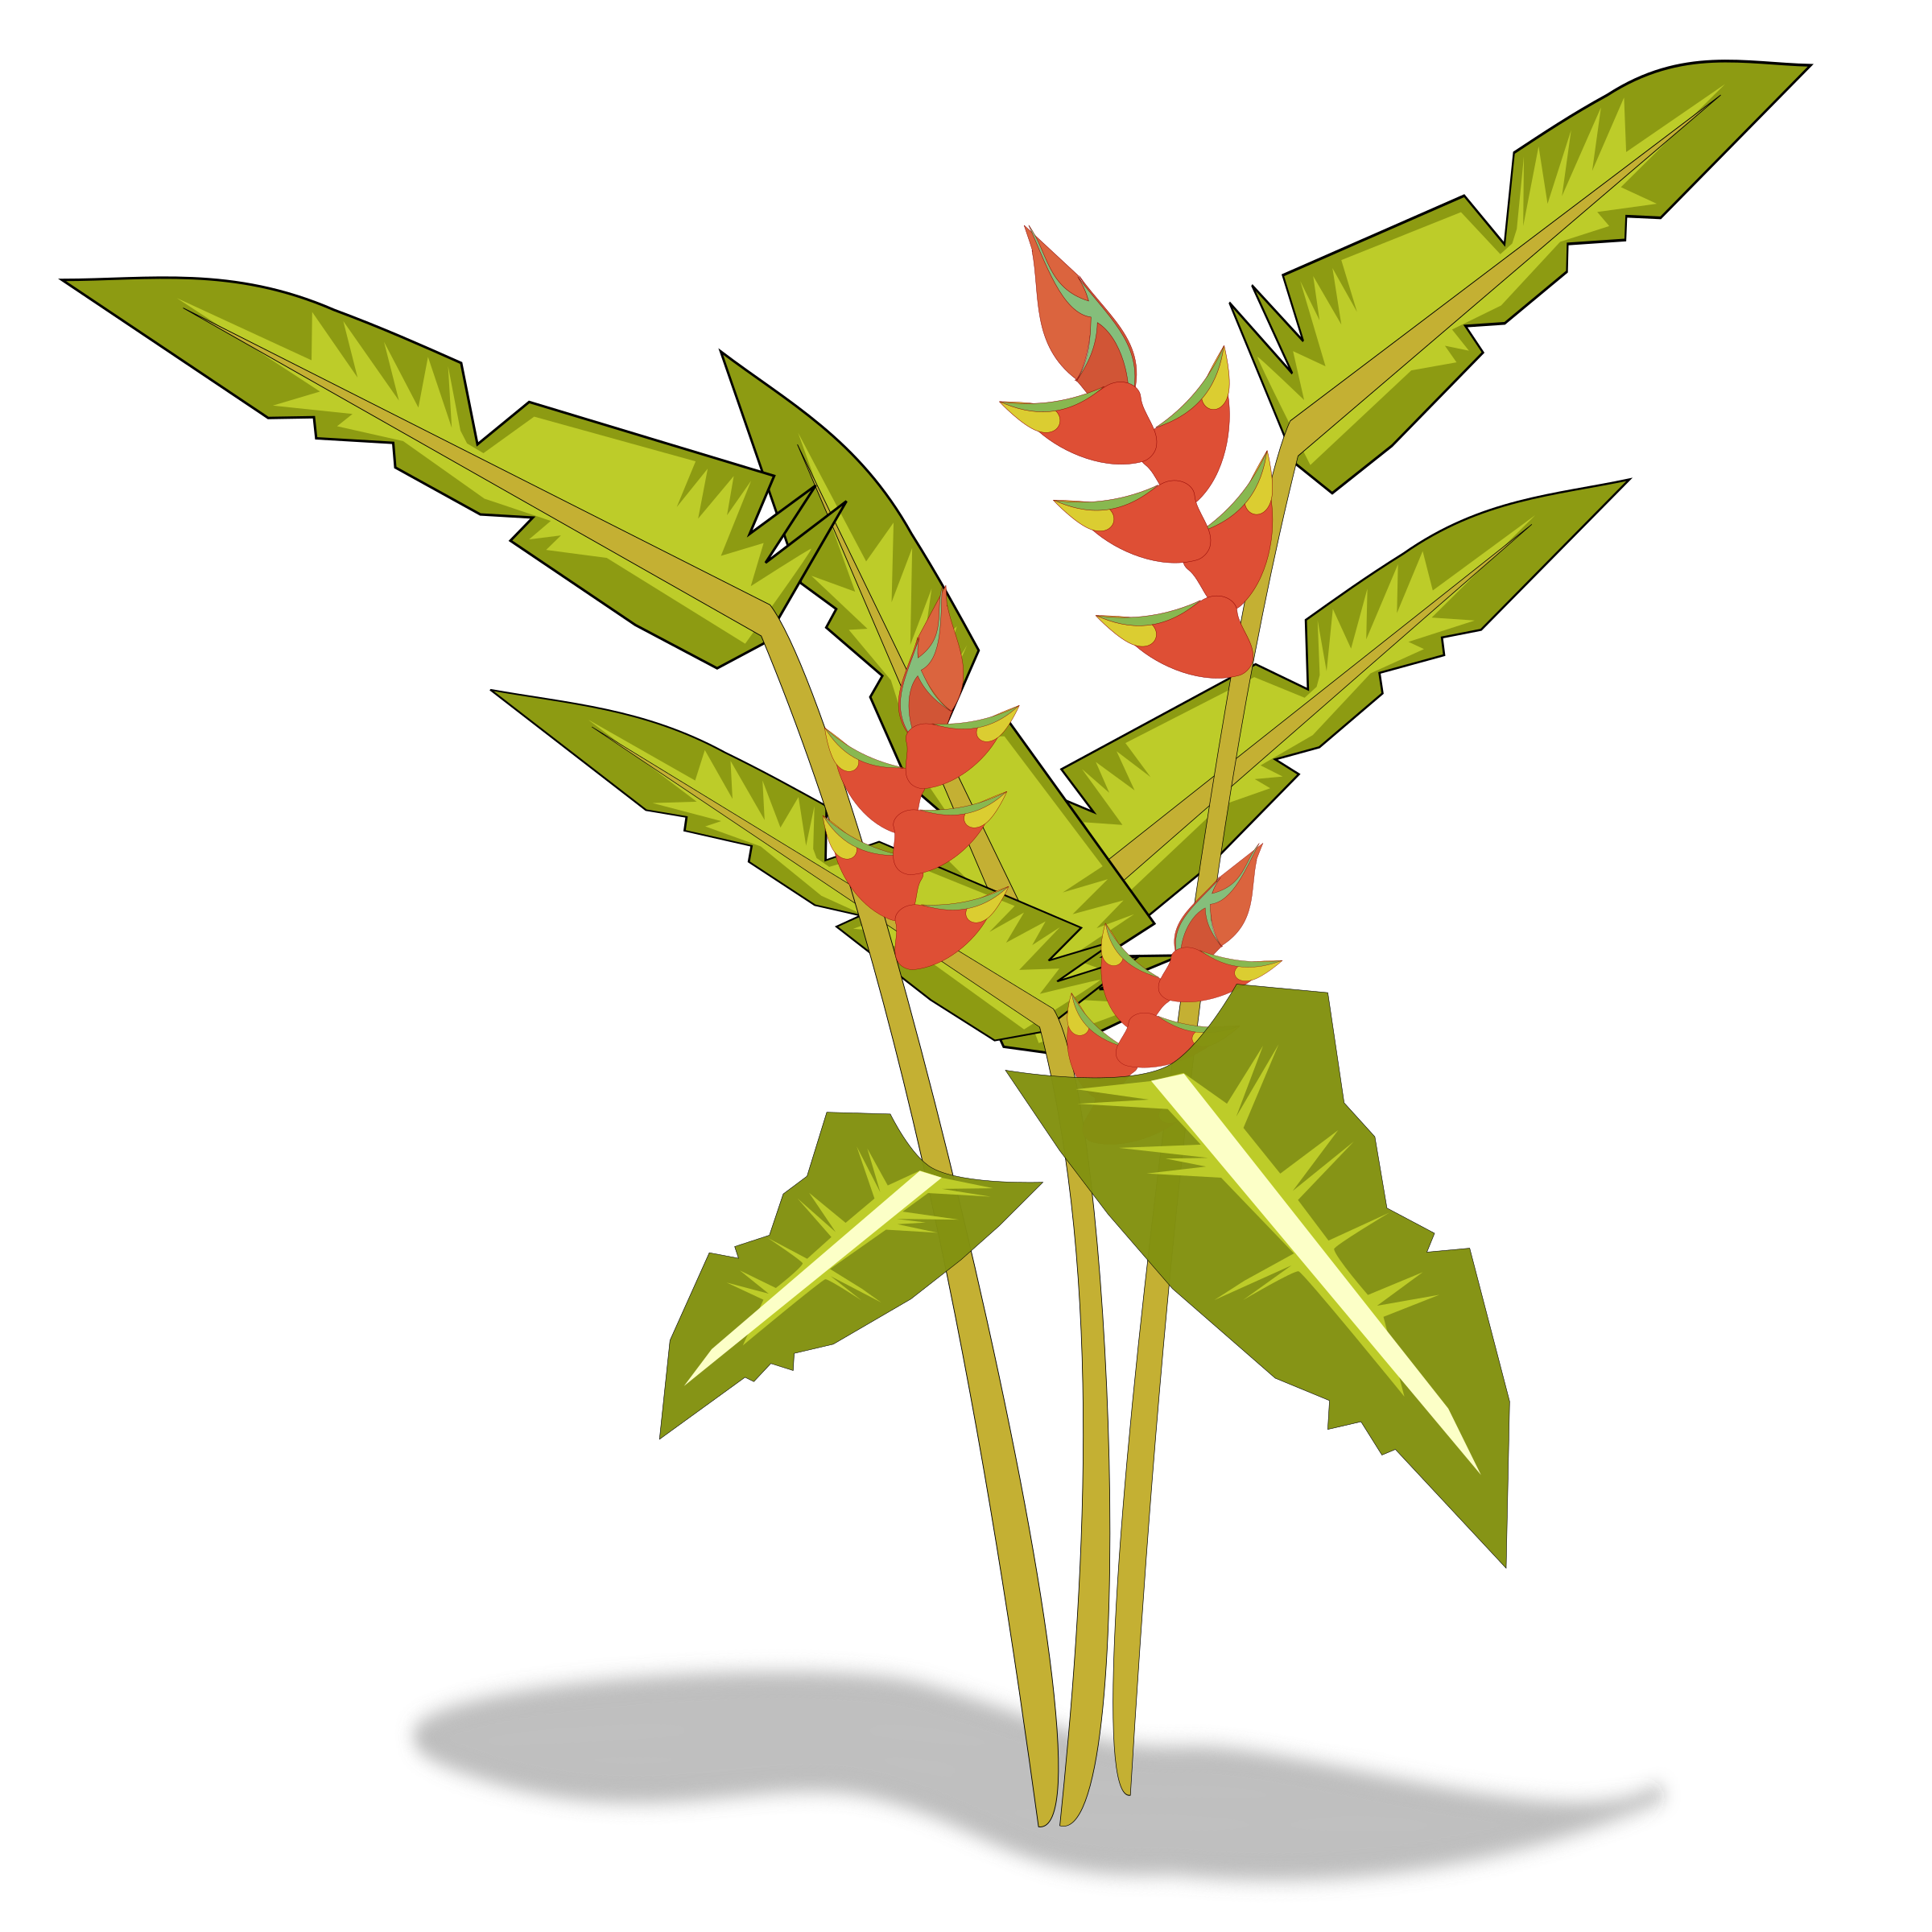 Heliconia big image png. Plants clipart terrestrial plant